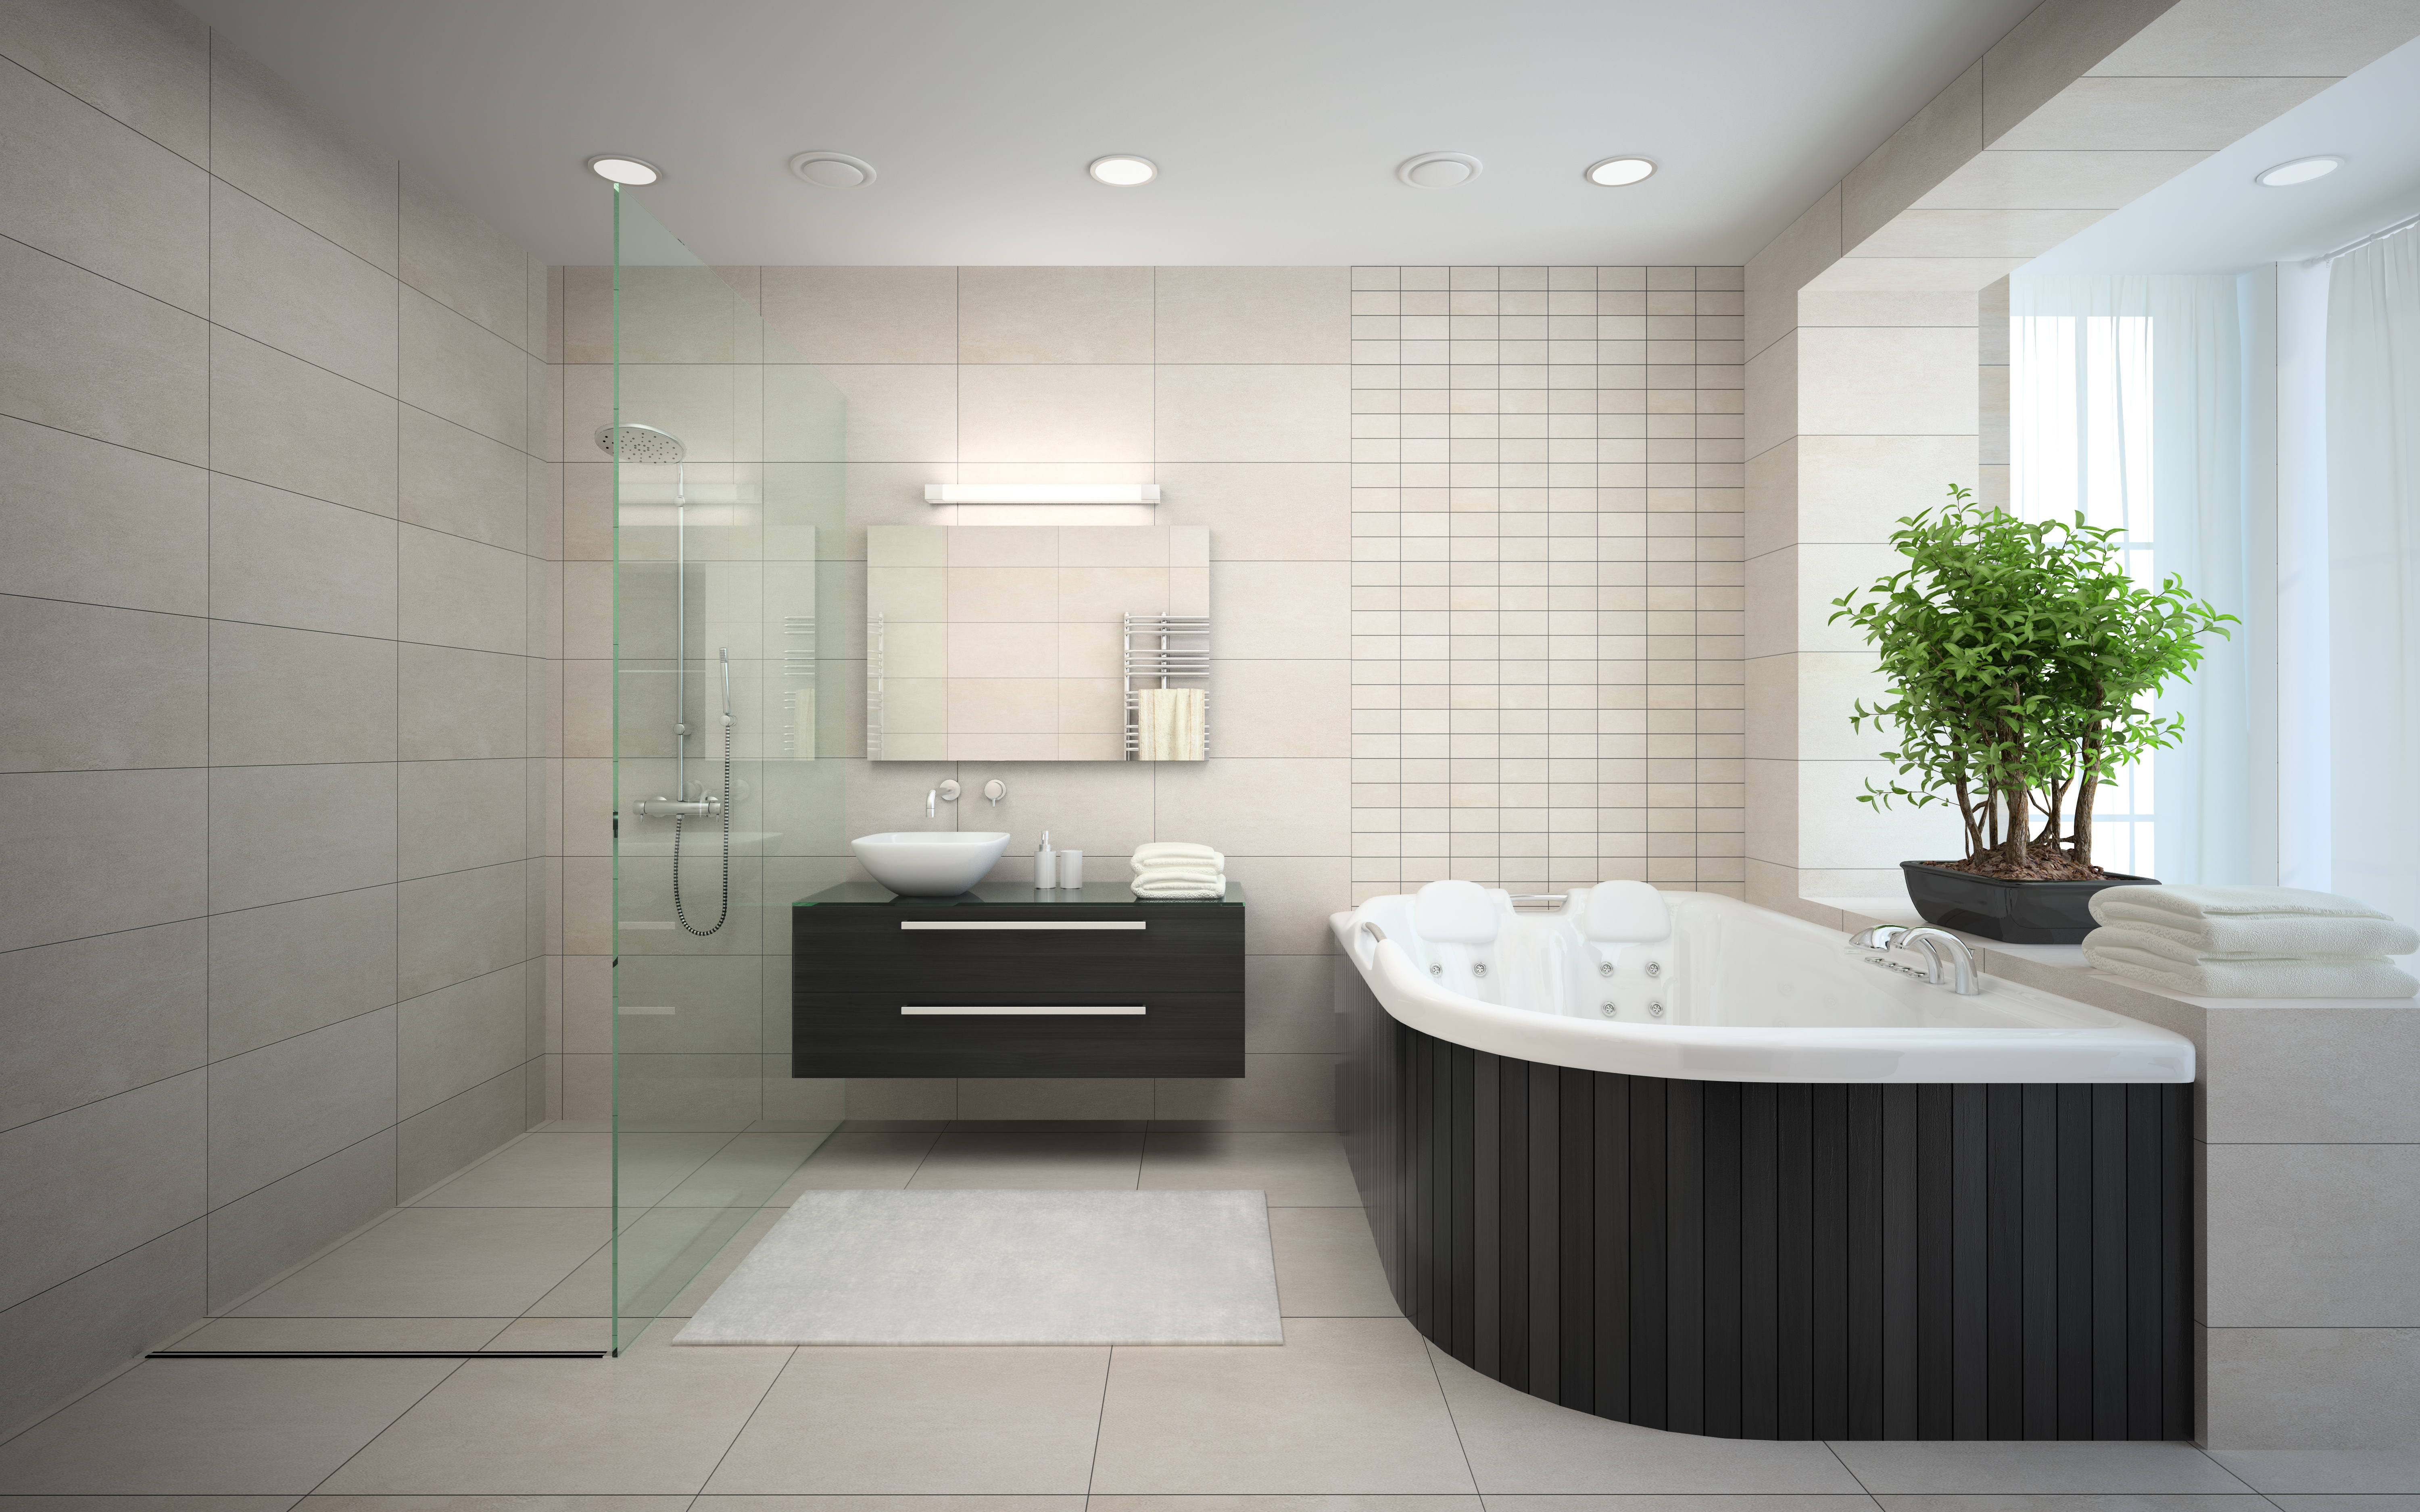 Designing your Dream Bathroom for your Needs